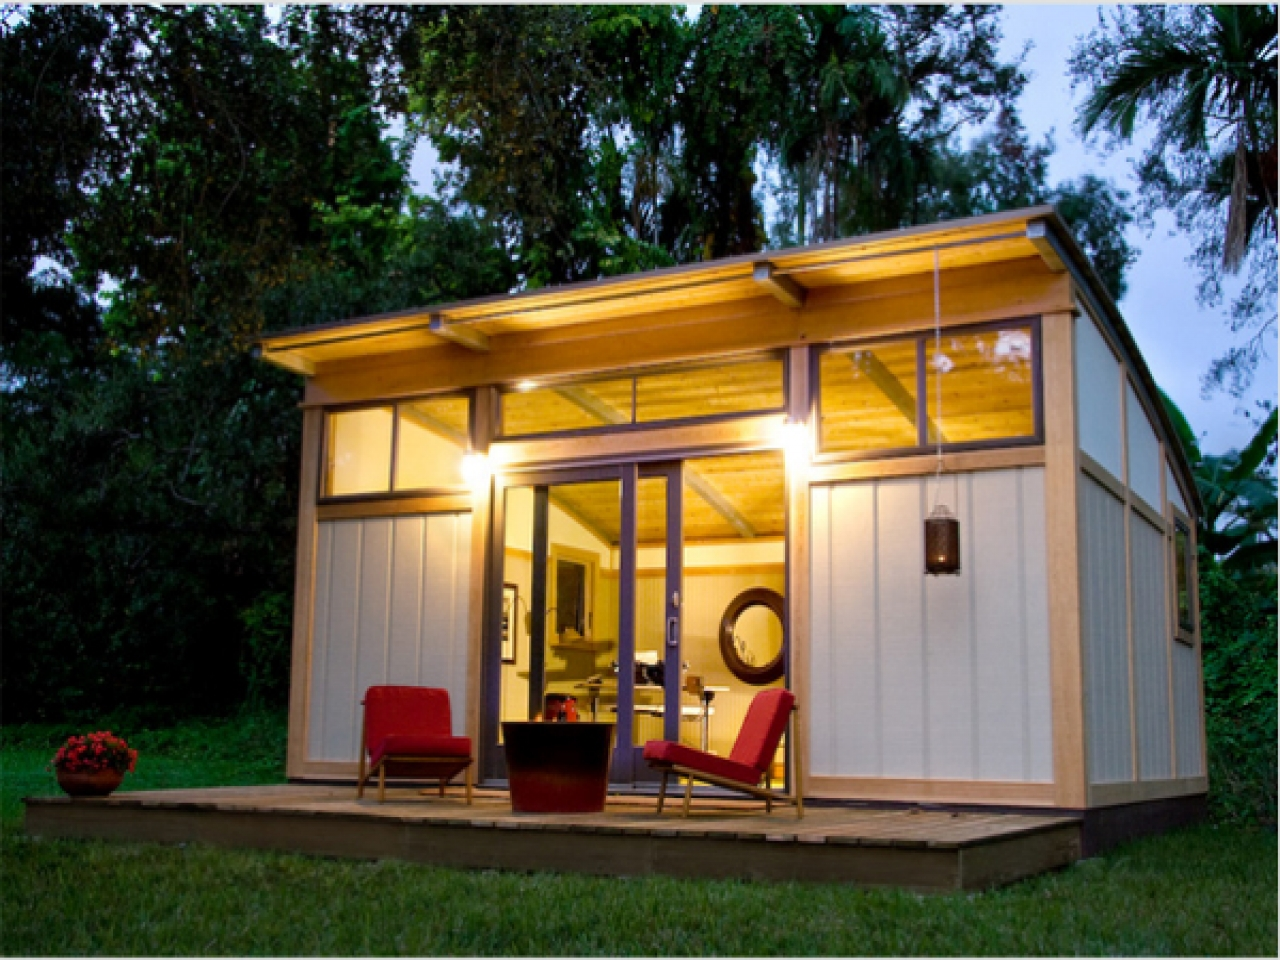 Tiny Home Designs: Small Portable Cabins Small Prefab Cabins, Affordable